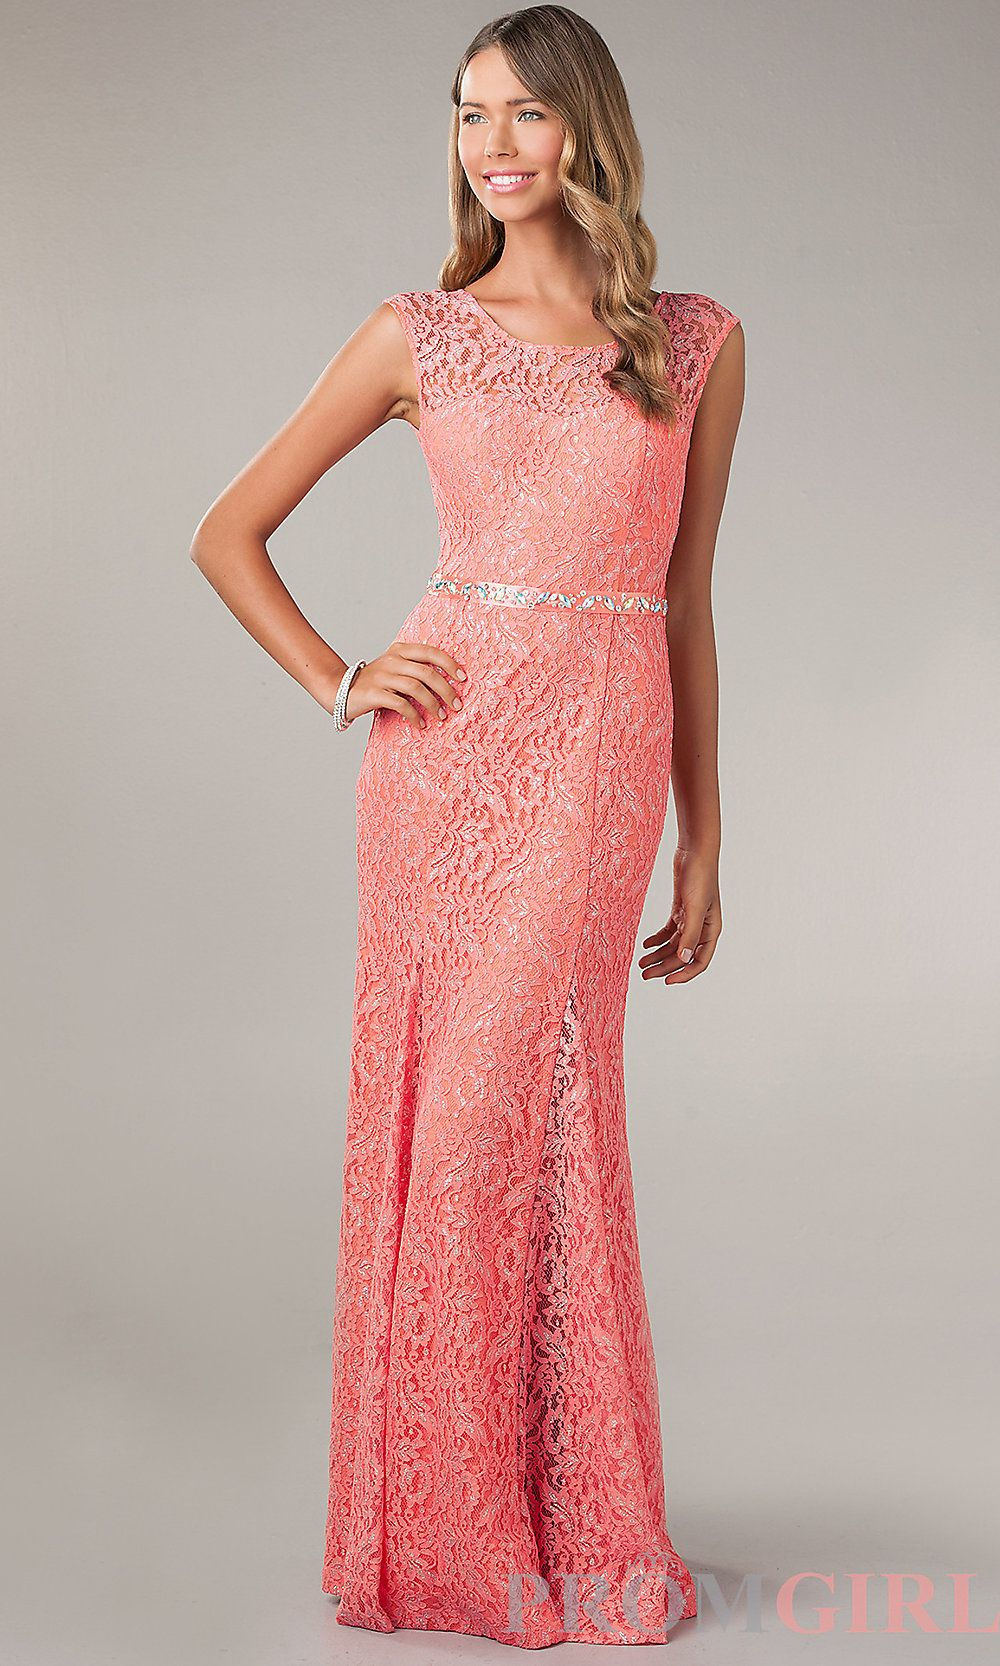 Long Lace Evening Gowns, Lace Trimmed Prom Dresses - PromGirl #prom ...